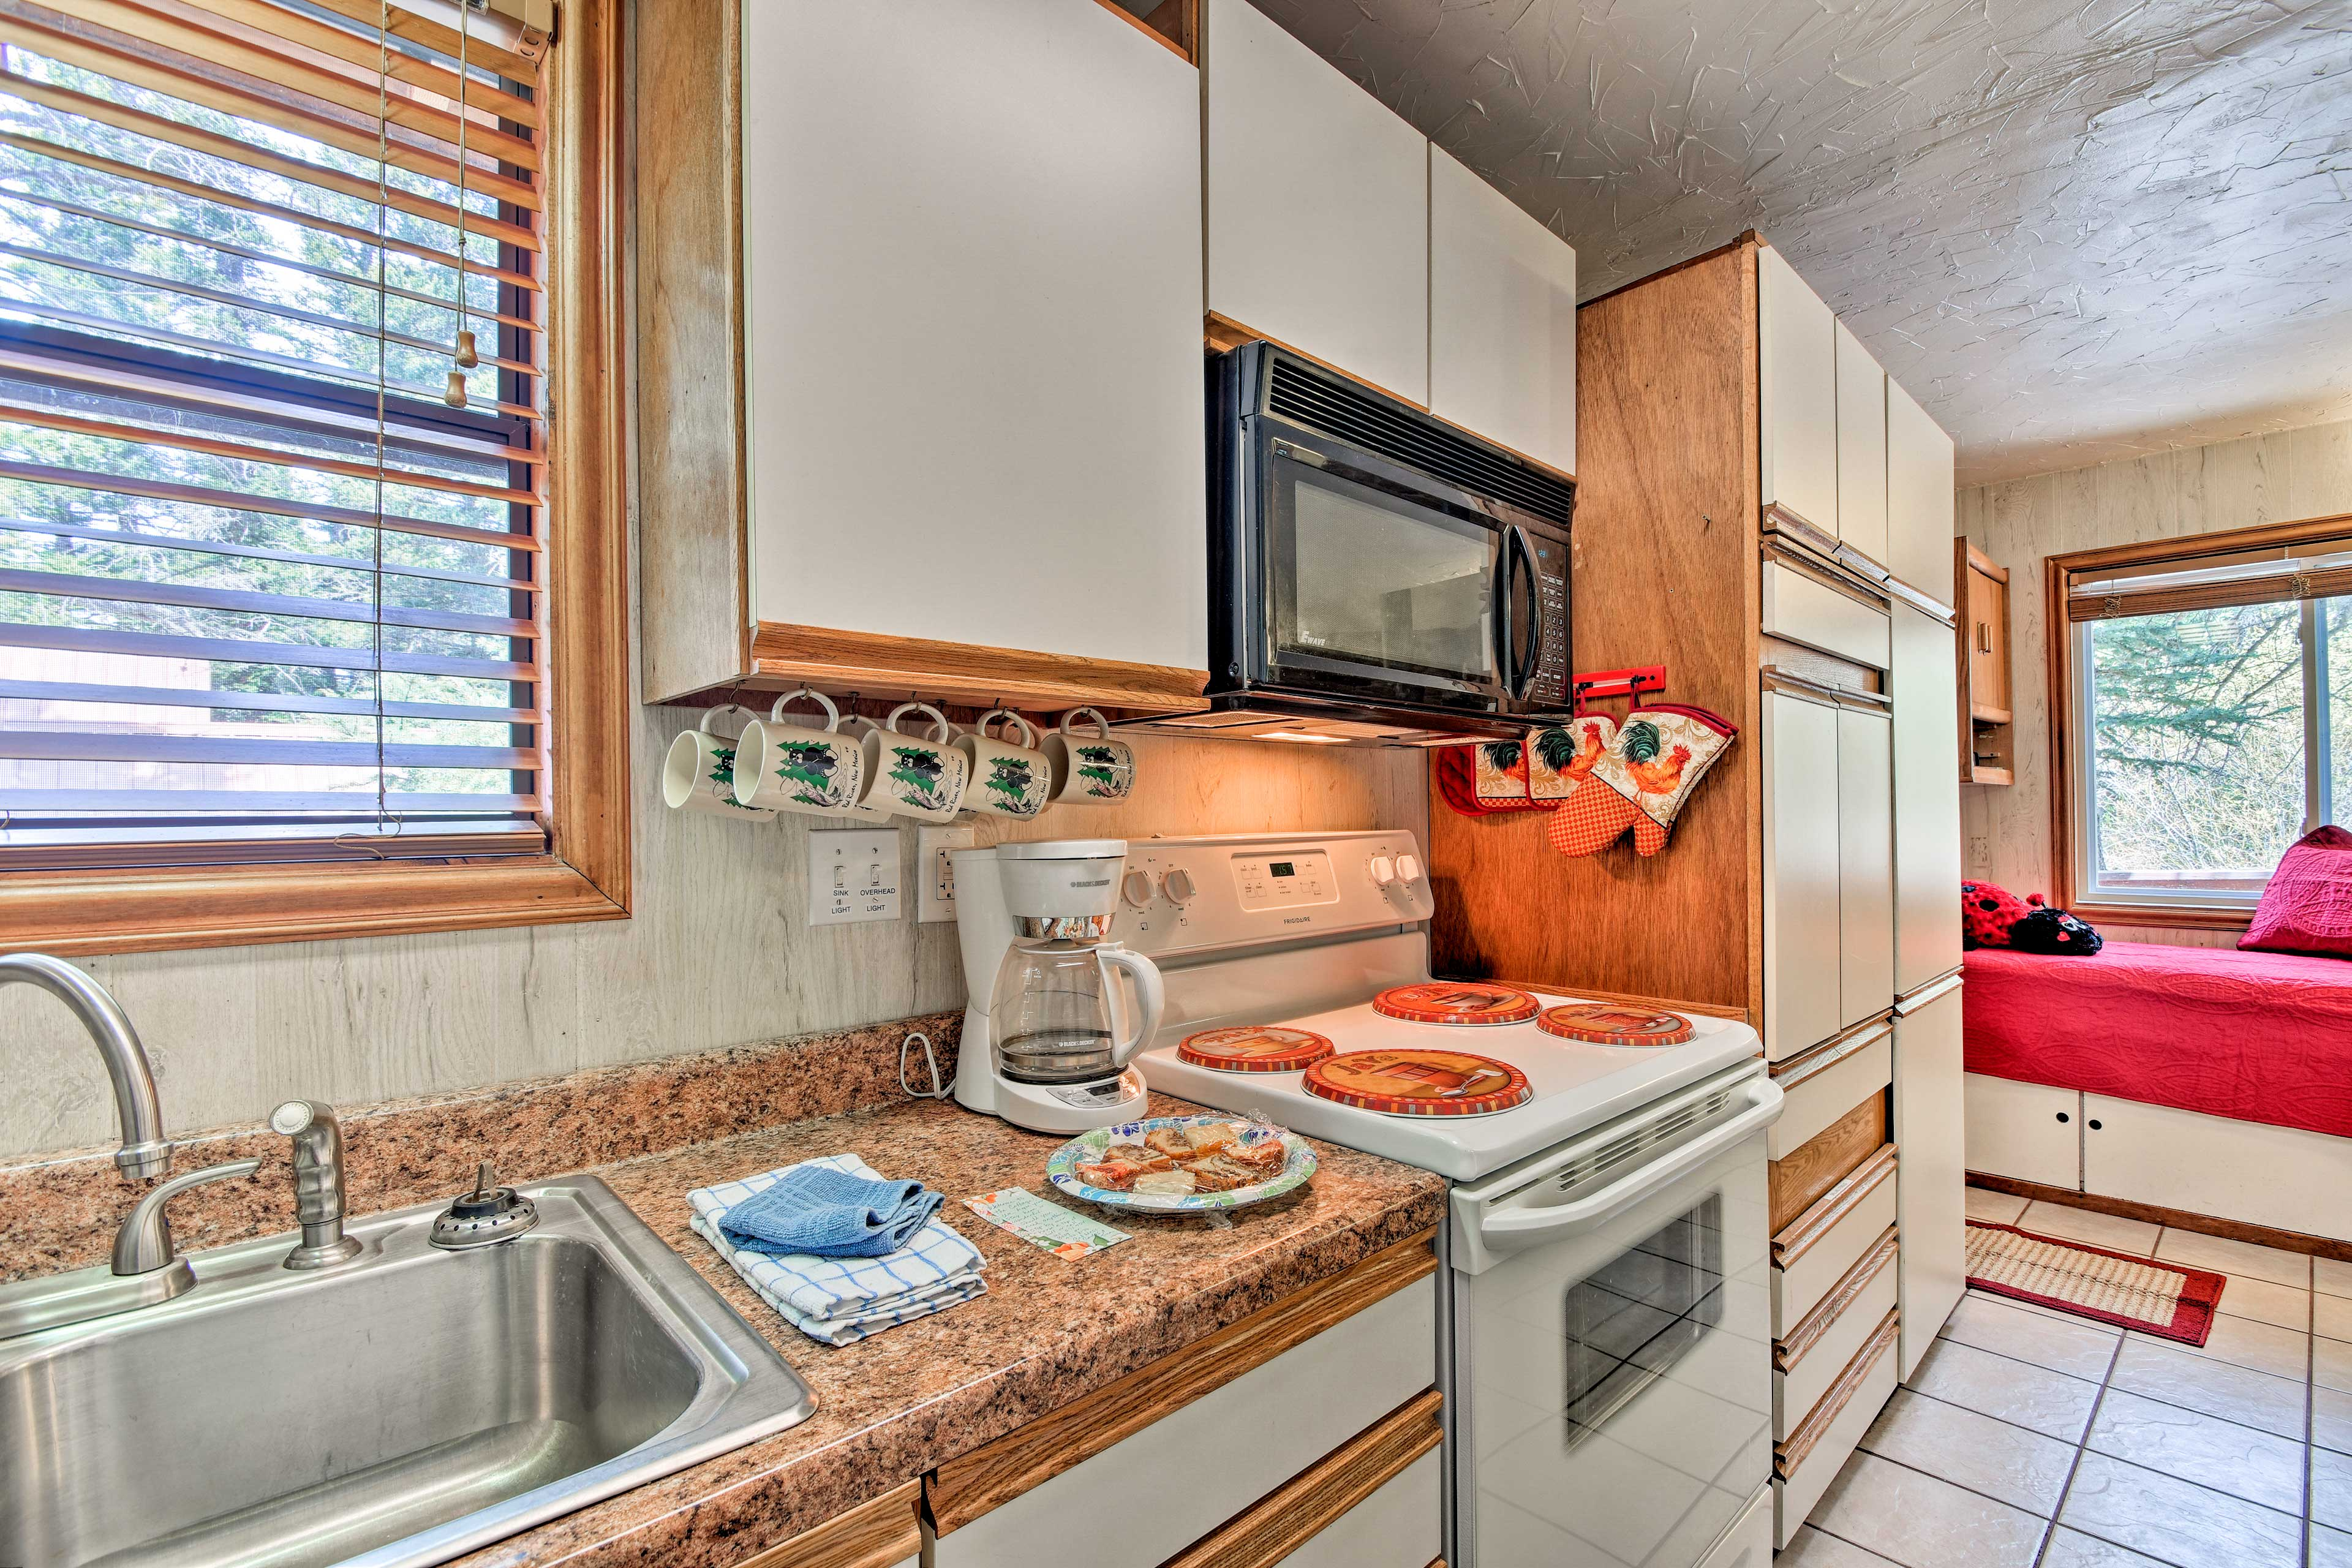 The kitchen is well-equipped with appliances.